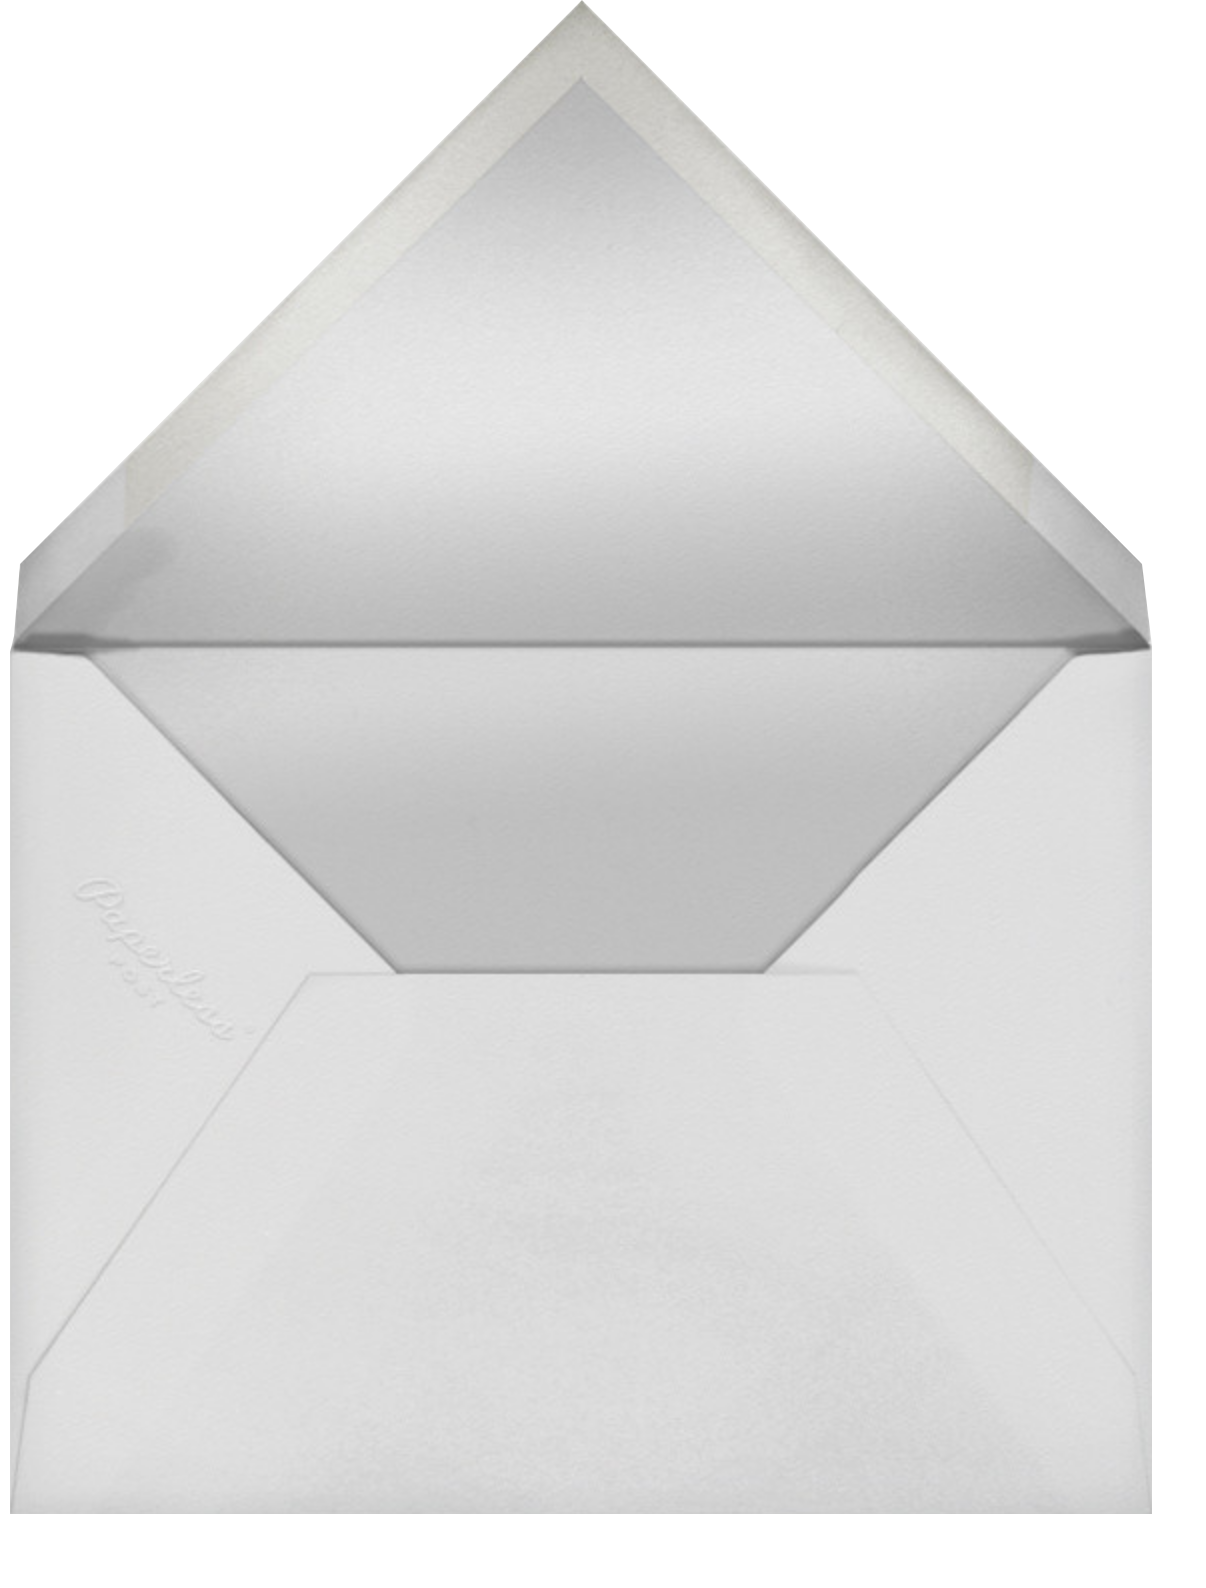 Ring Around the Rosies - Paperless Post - Mother's Day - envelope back